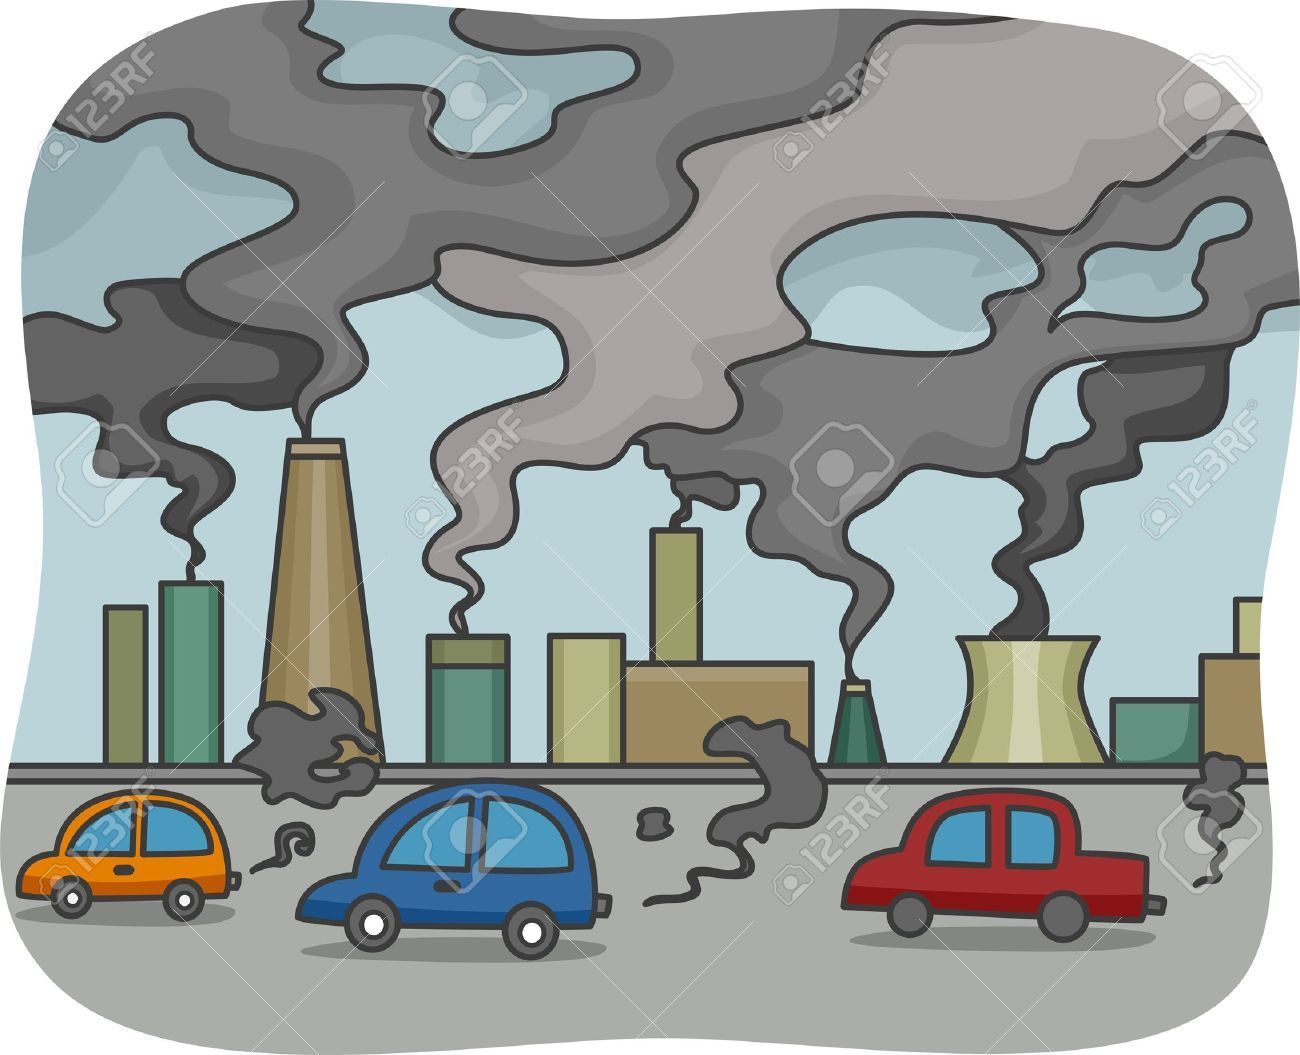 Contaminacion Dibujo Industria Buscar Con Google Air Pollution Poster Air Pollution Project Save Water Poster Drawing